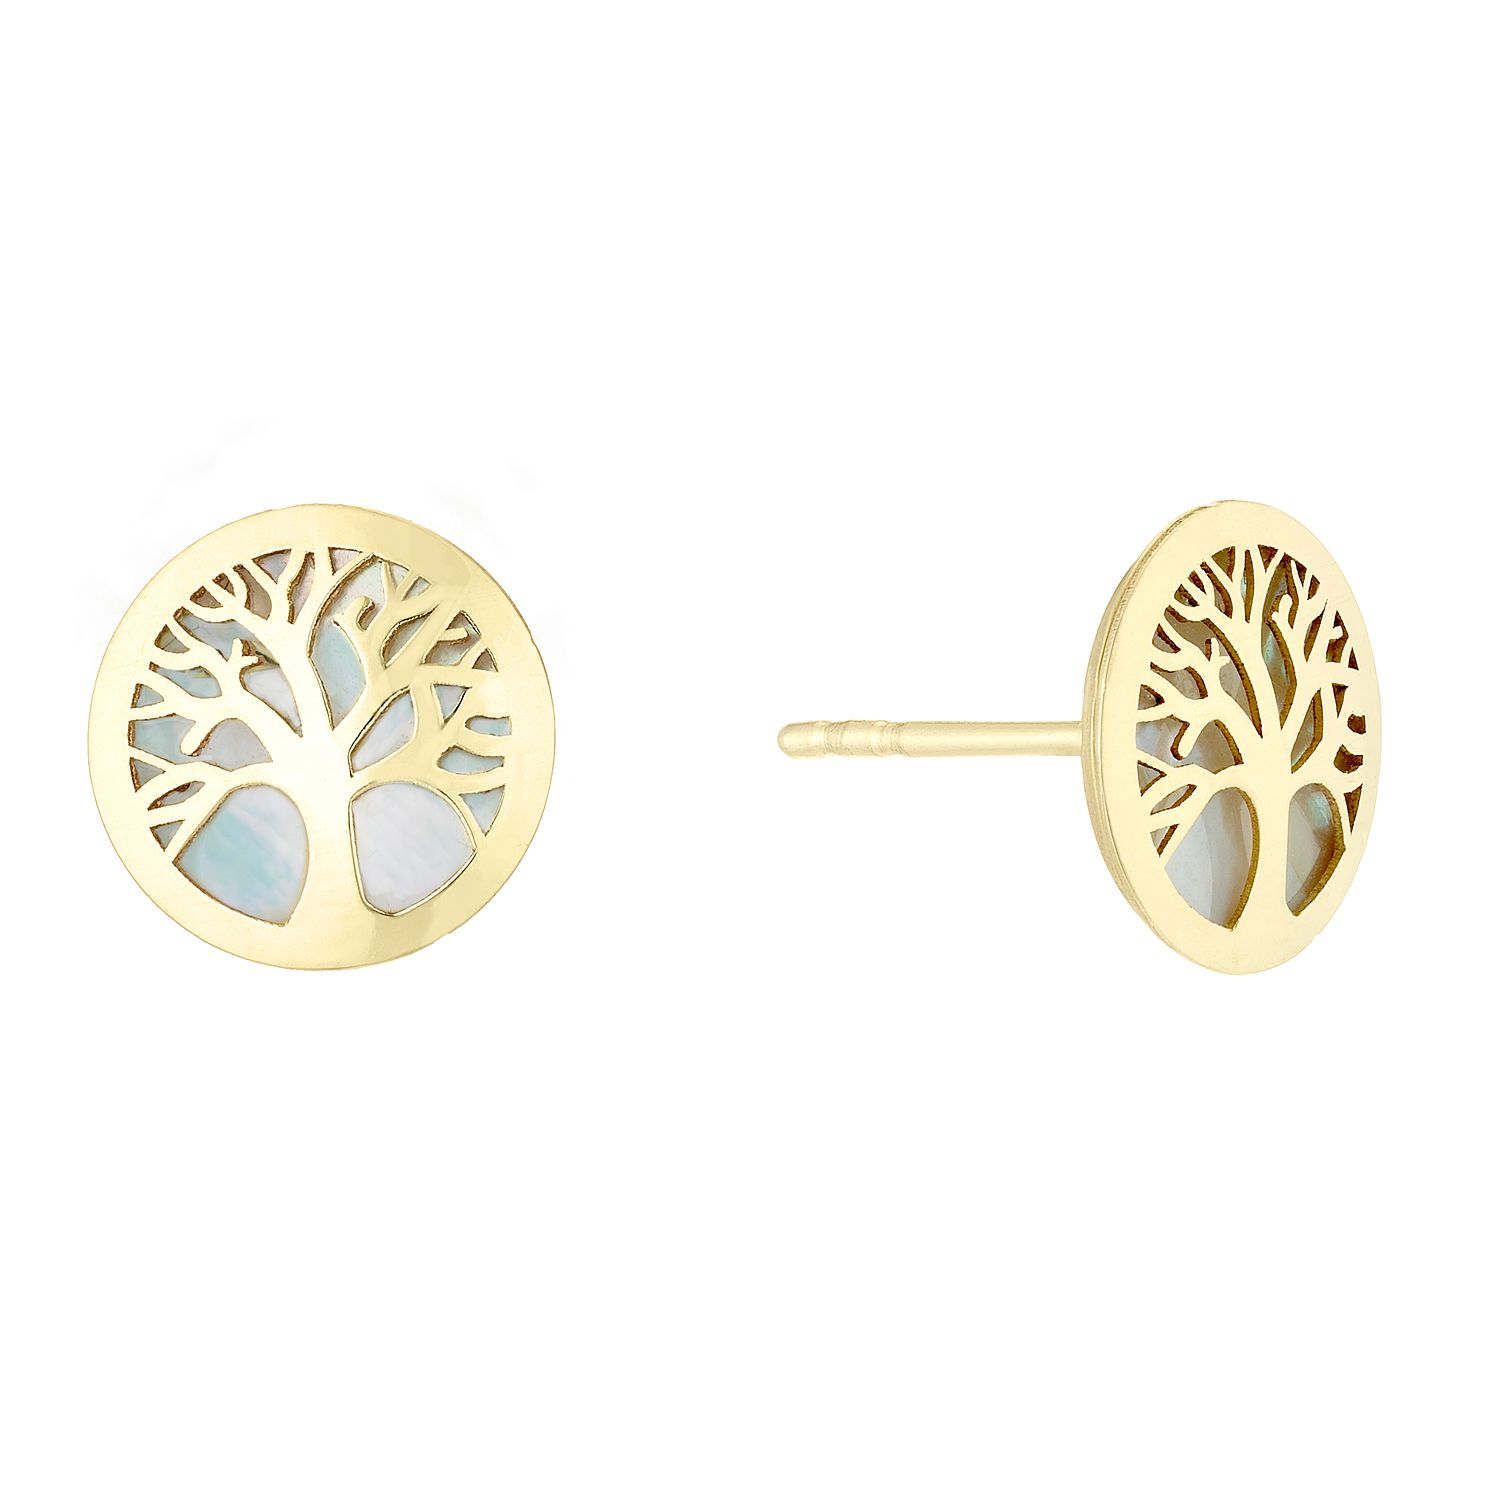 9ct Yellow Gold Tree Of Life Designs Stud Earrings - Product number 4517253